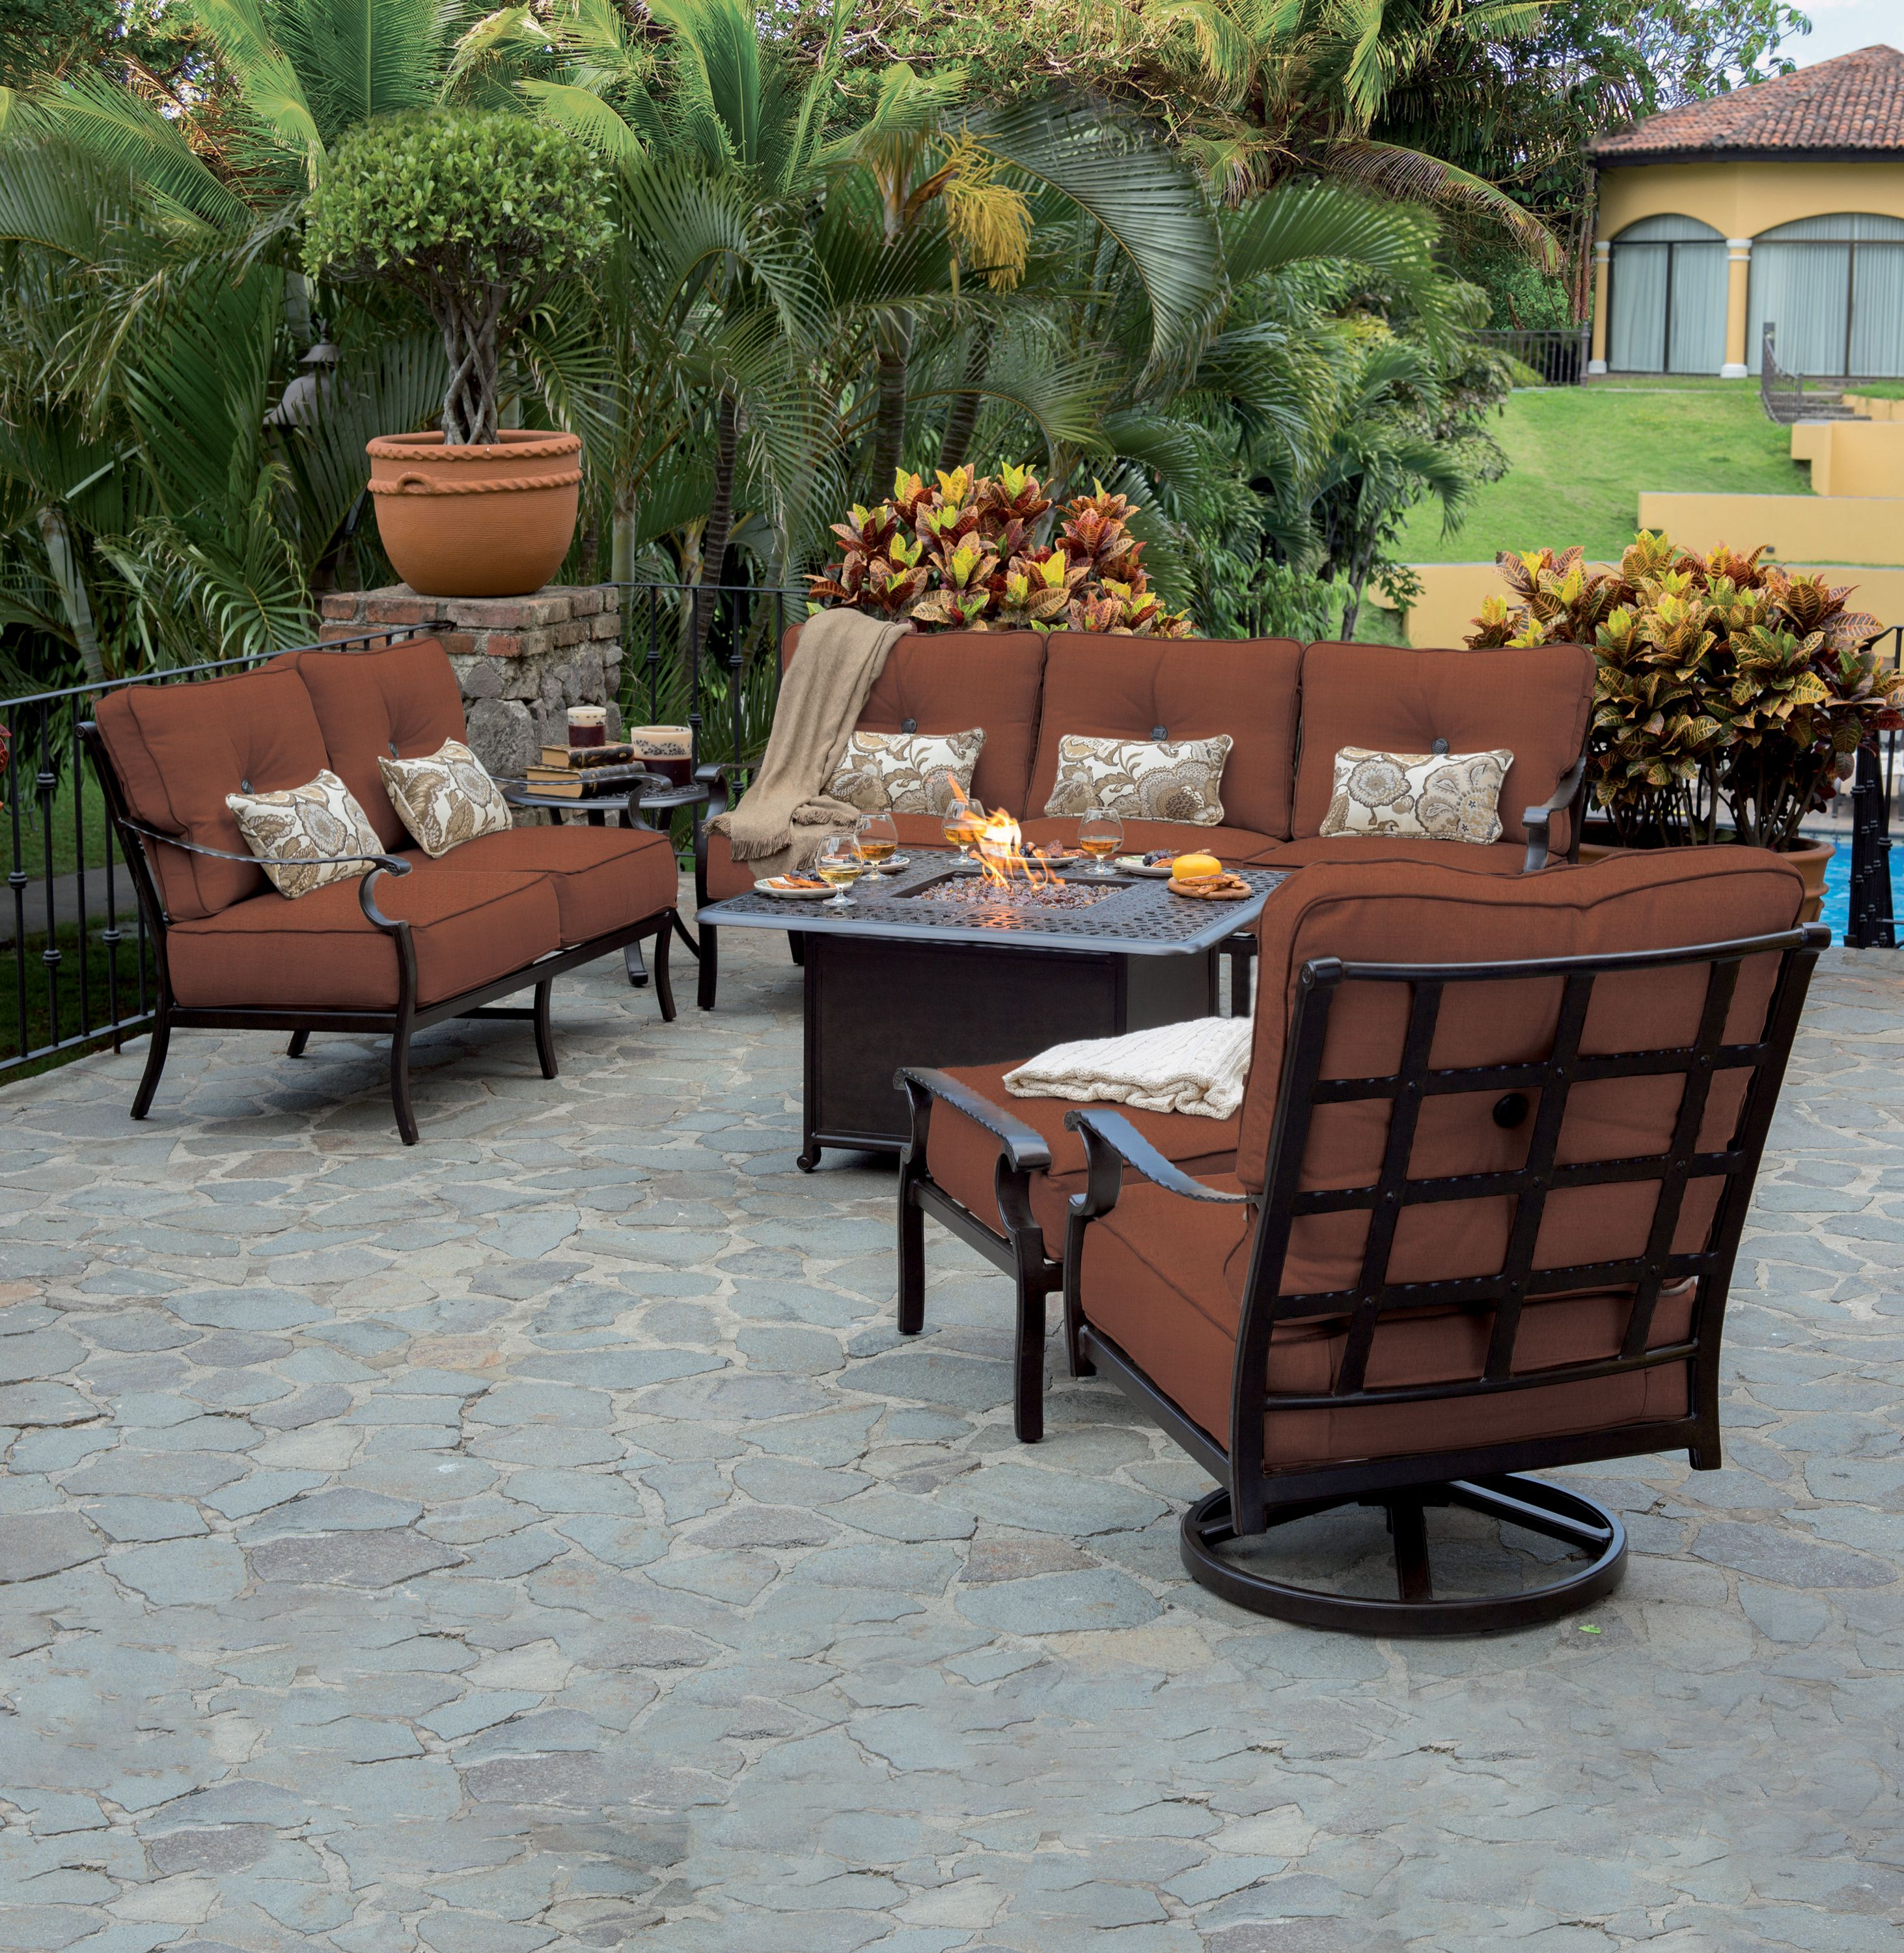 The Monterey Collection Offers Up Plush Deep Seating Comfort And Its Durable Aluminum Frame Is A Throwback To Patio Outdoor Patio Furniture Fire Pit Furniture